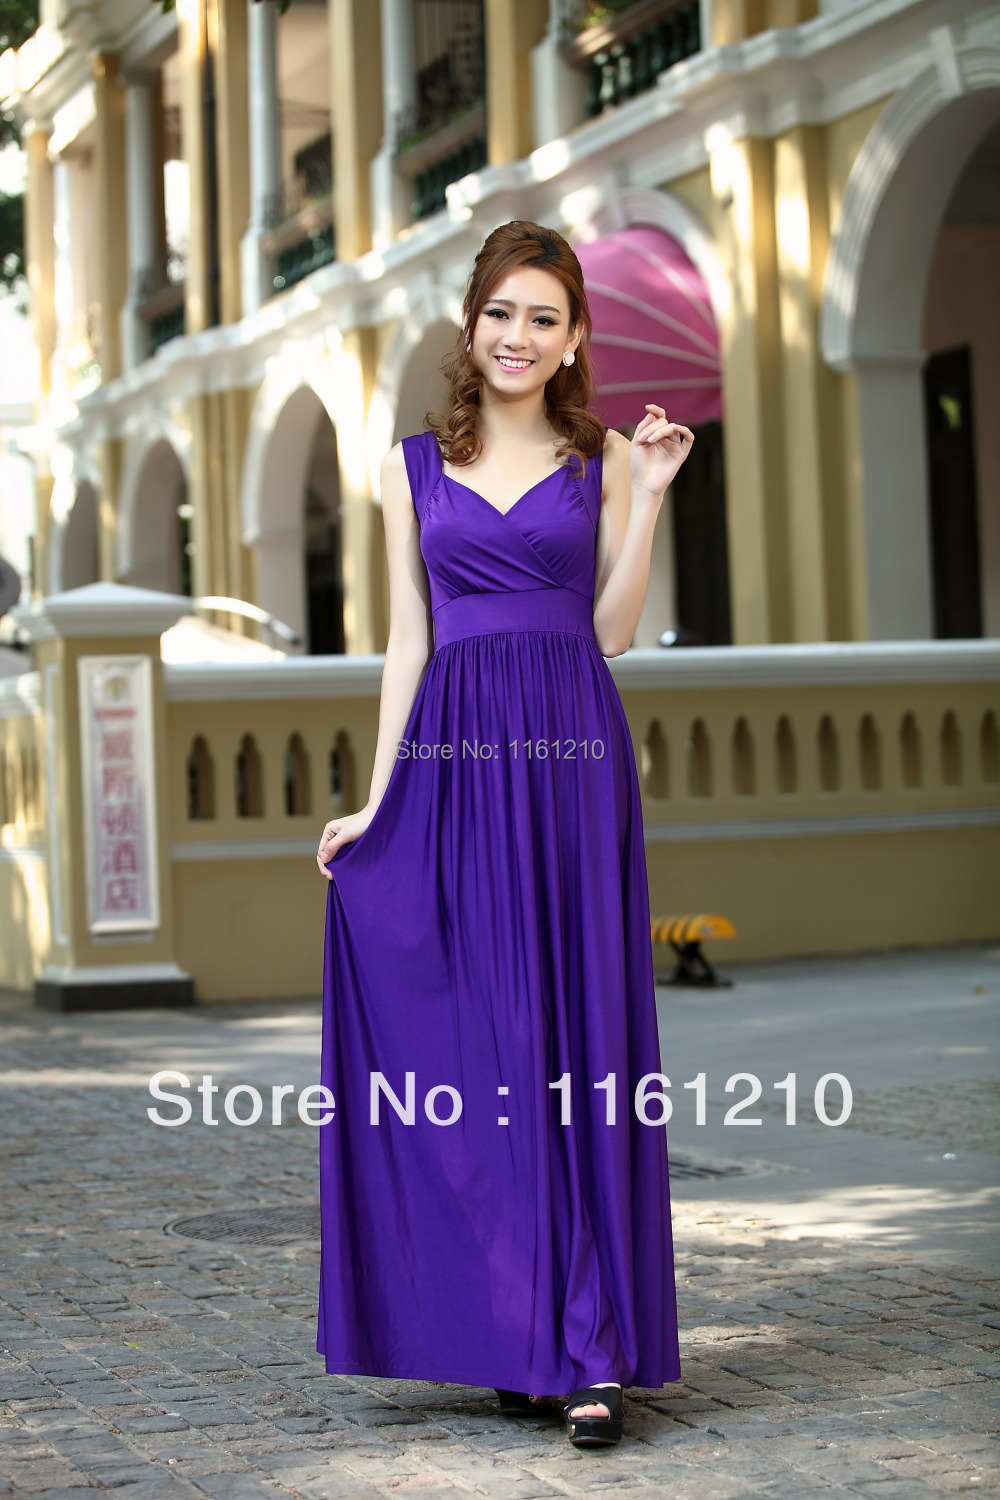 Purple Formal DressesParty Ball Gowns Bridesmaids Plus sizes ...